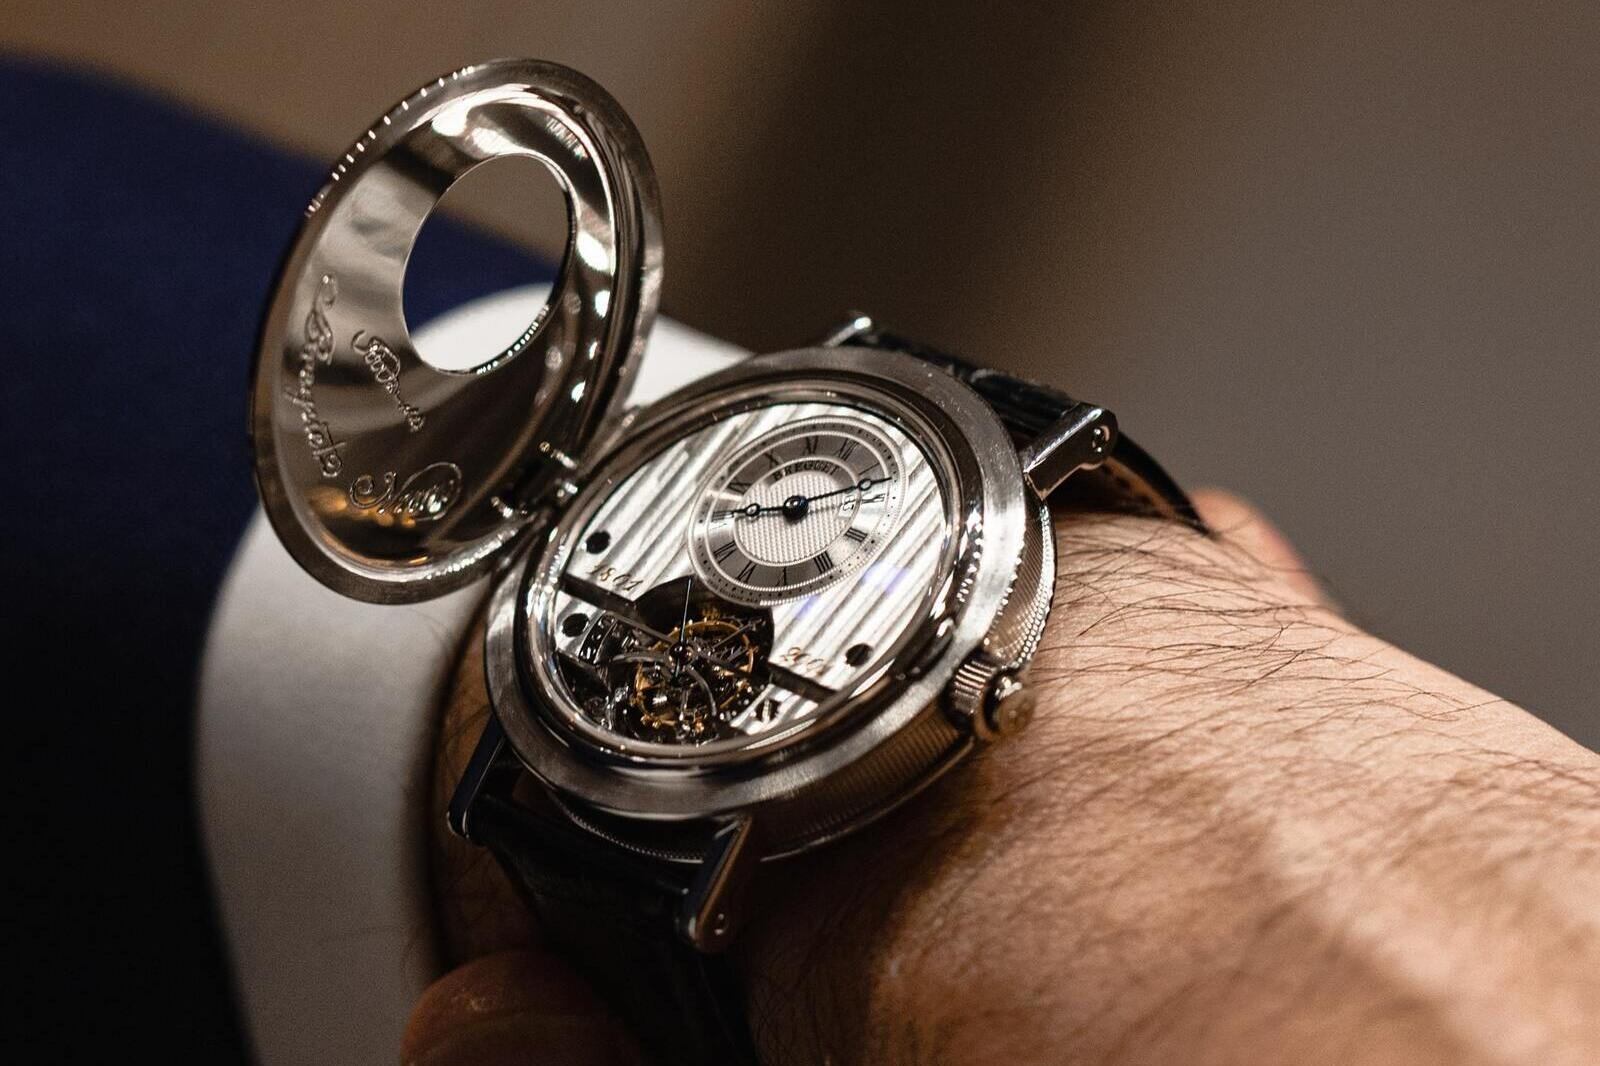 The Breguet 1801PT Limited Edition. 200yrs, 2 geniuses, celebrated in a watch.